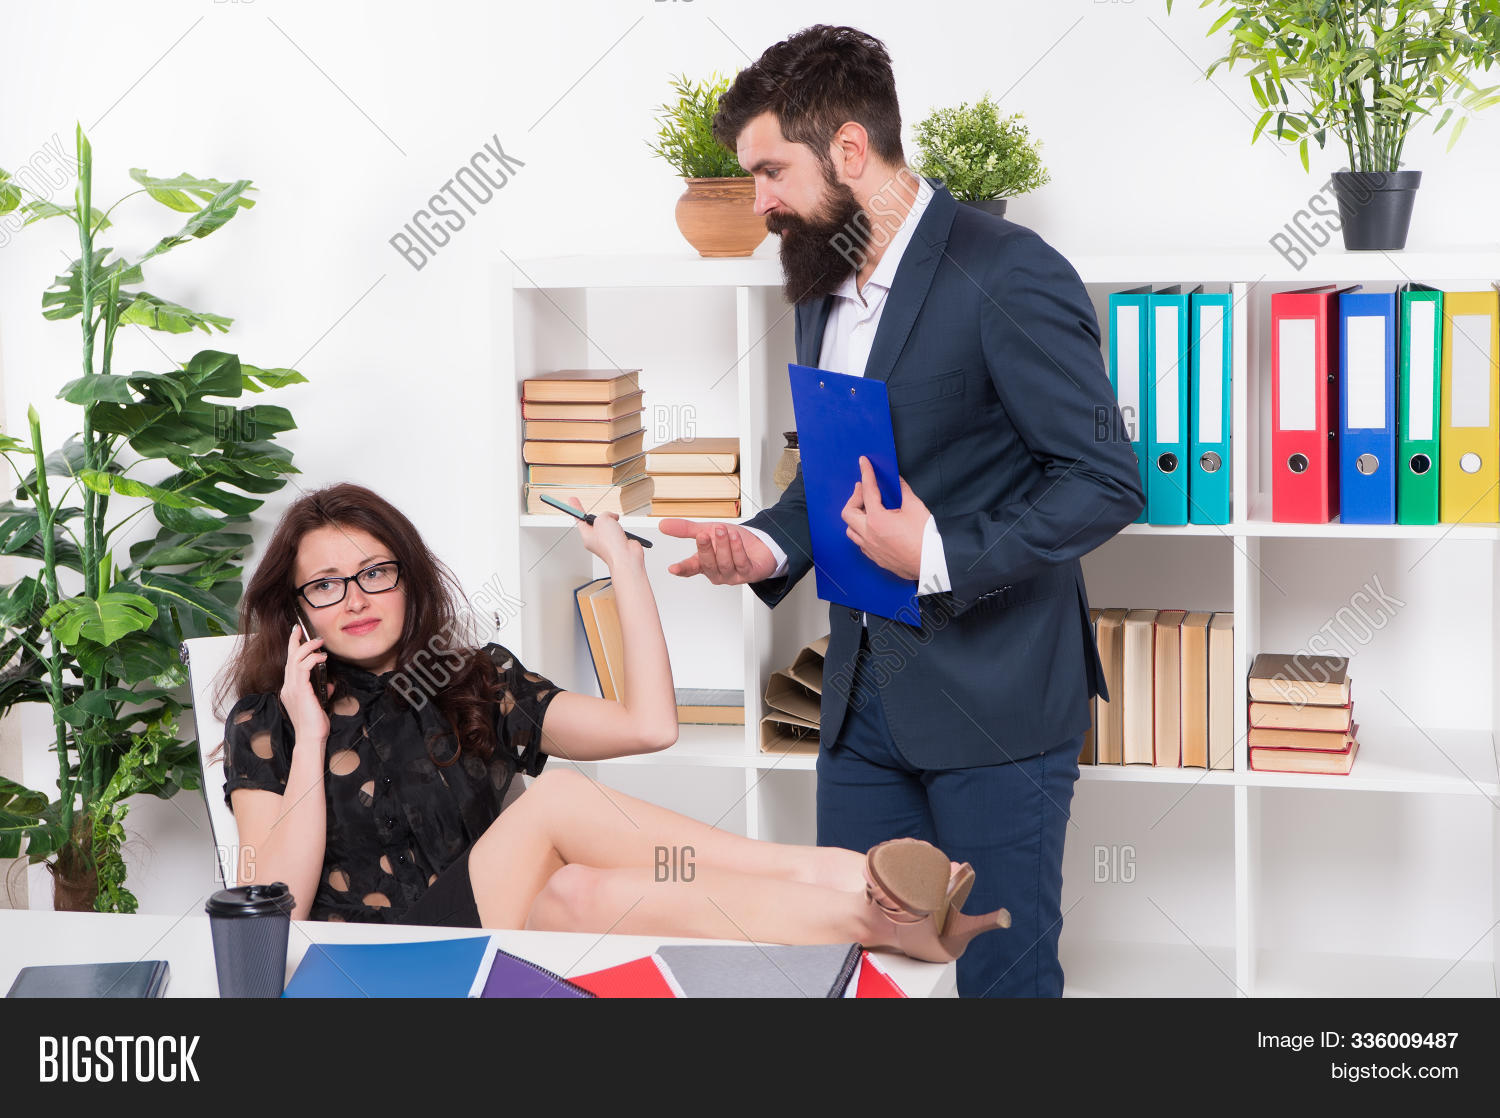 Im busy. Busy secretary talk on phone. Working couple in office. Business partners. Busy working day. Dont be busy be productive.